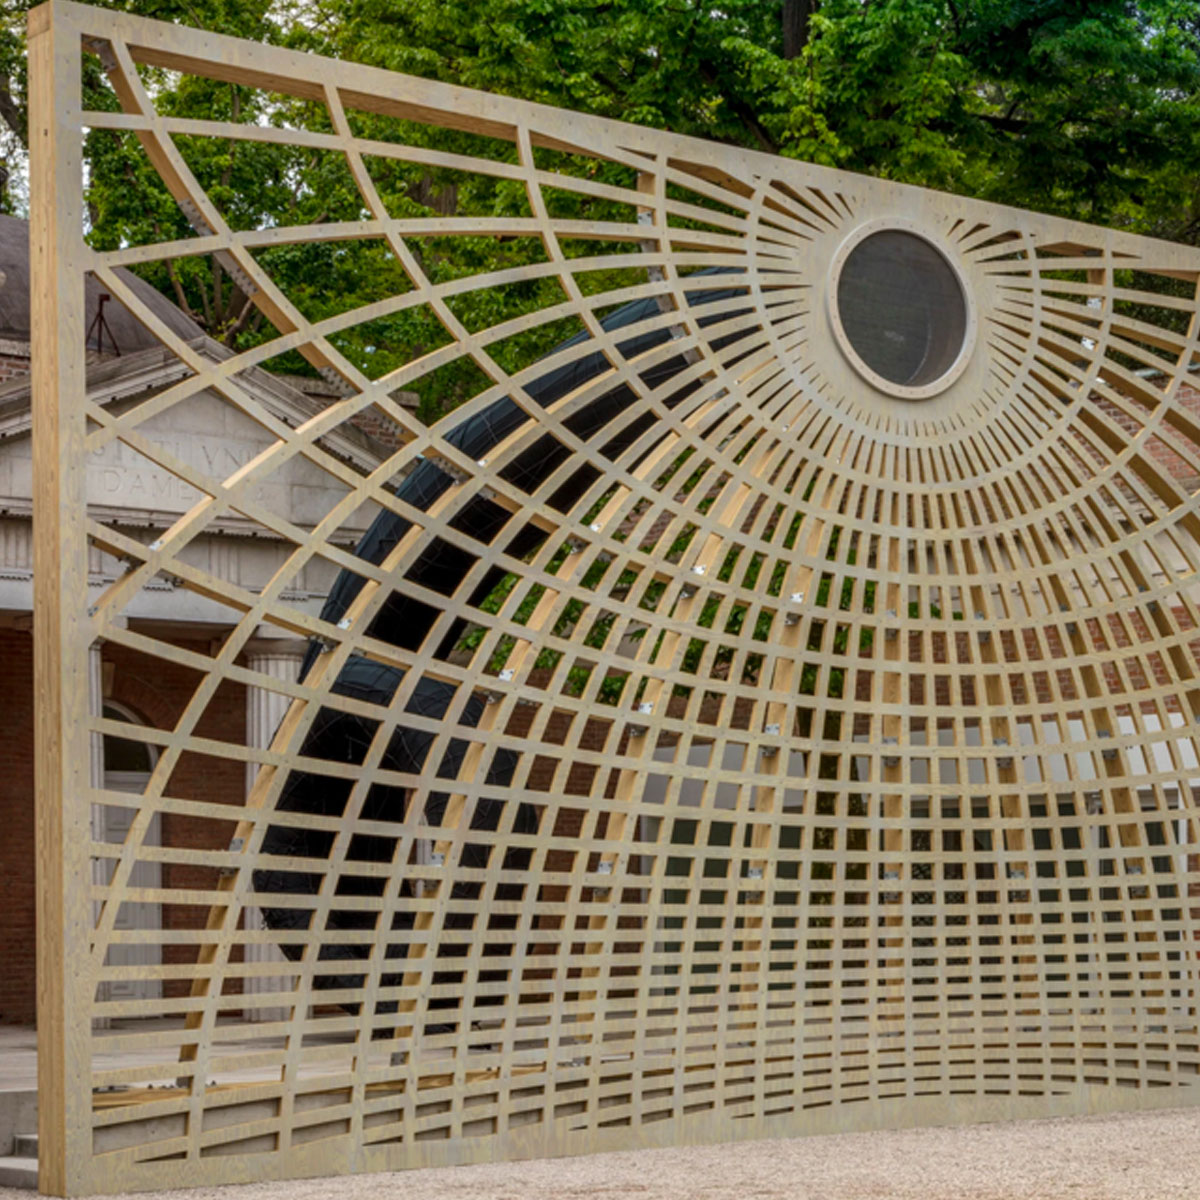 Madison Square Park Conservancy Presents Martin Puryear Exhibit at Venice Biennale Starting May 11